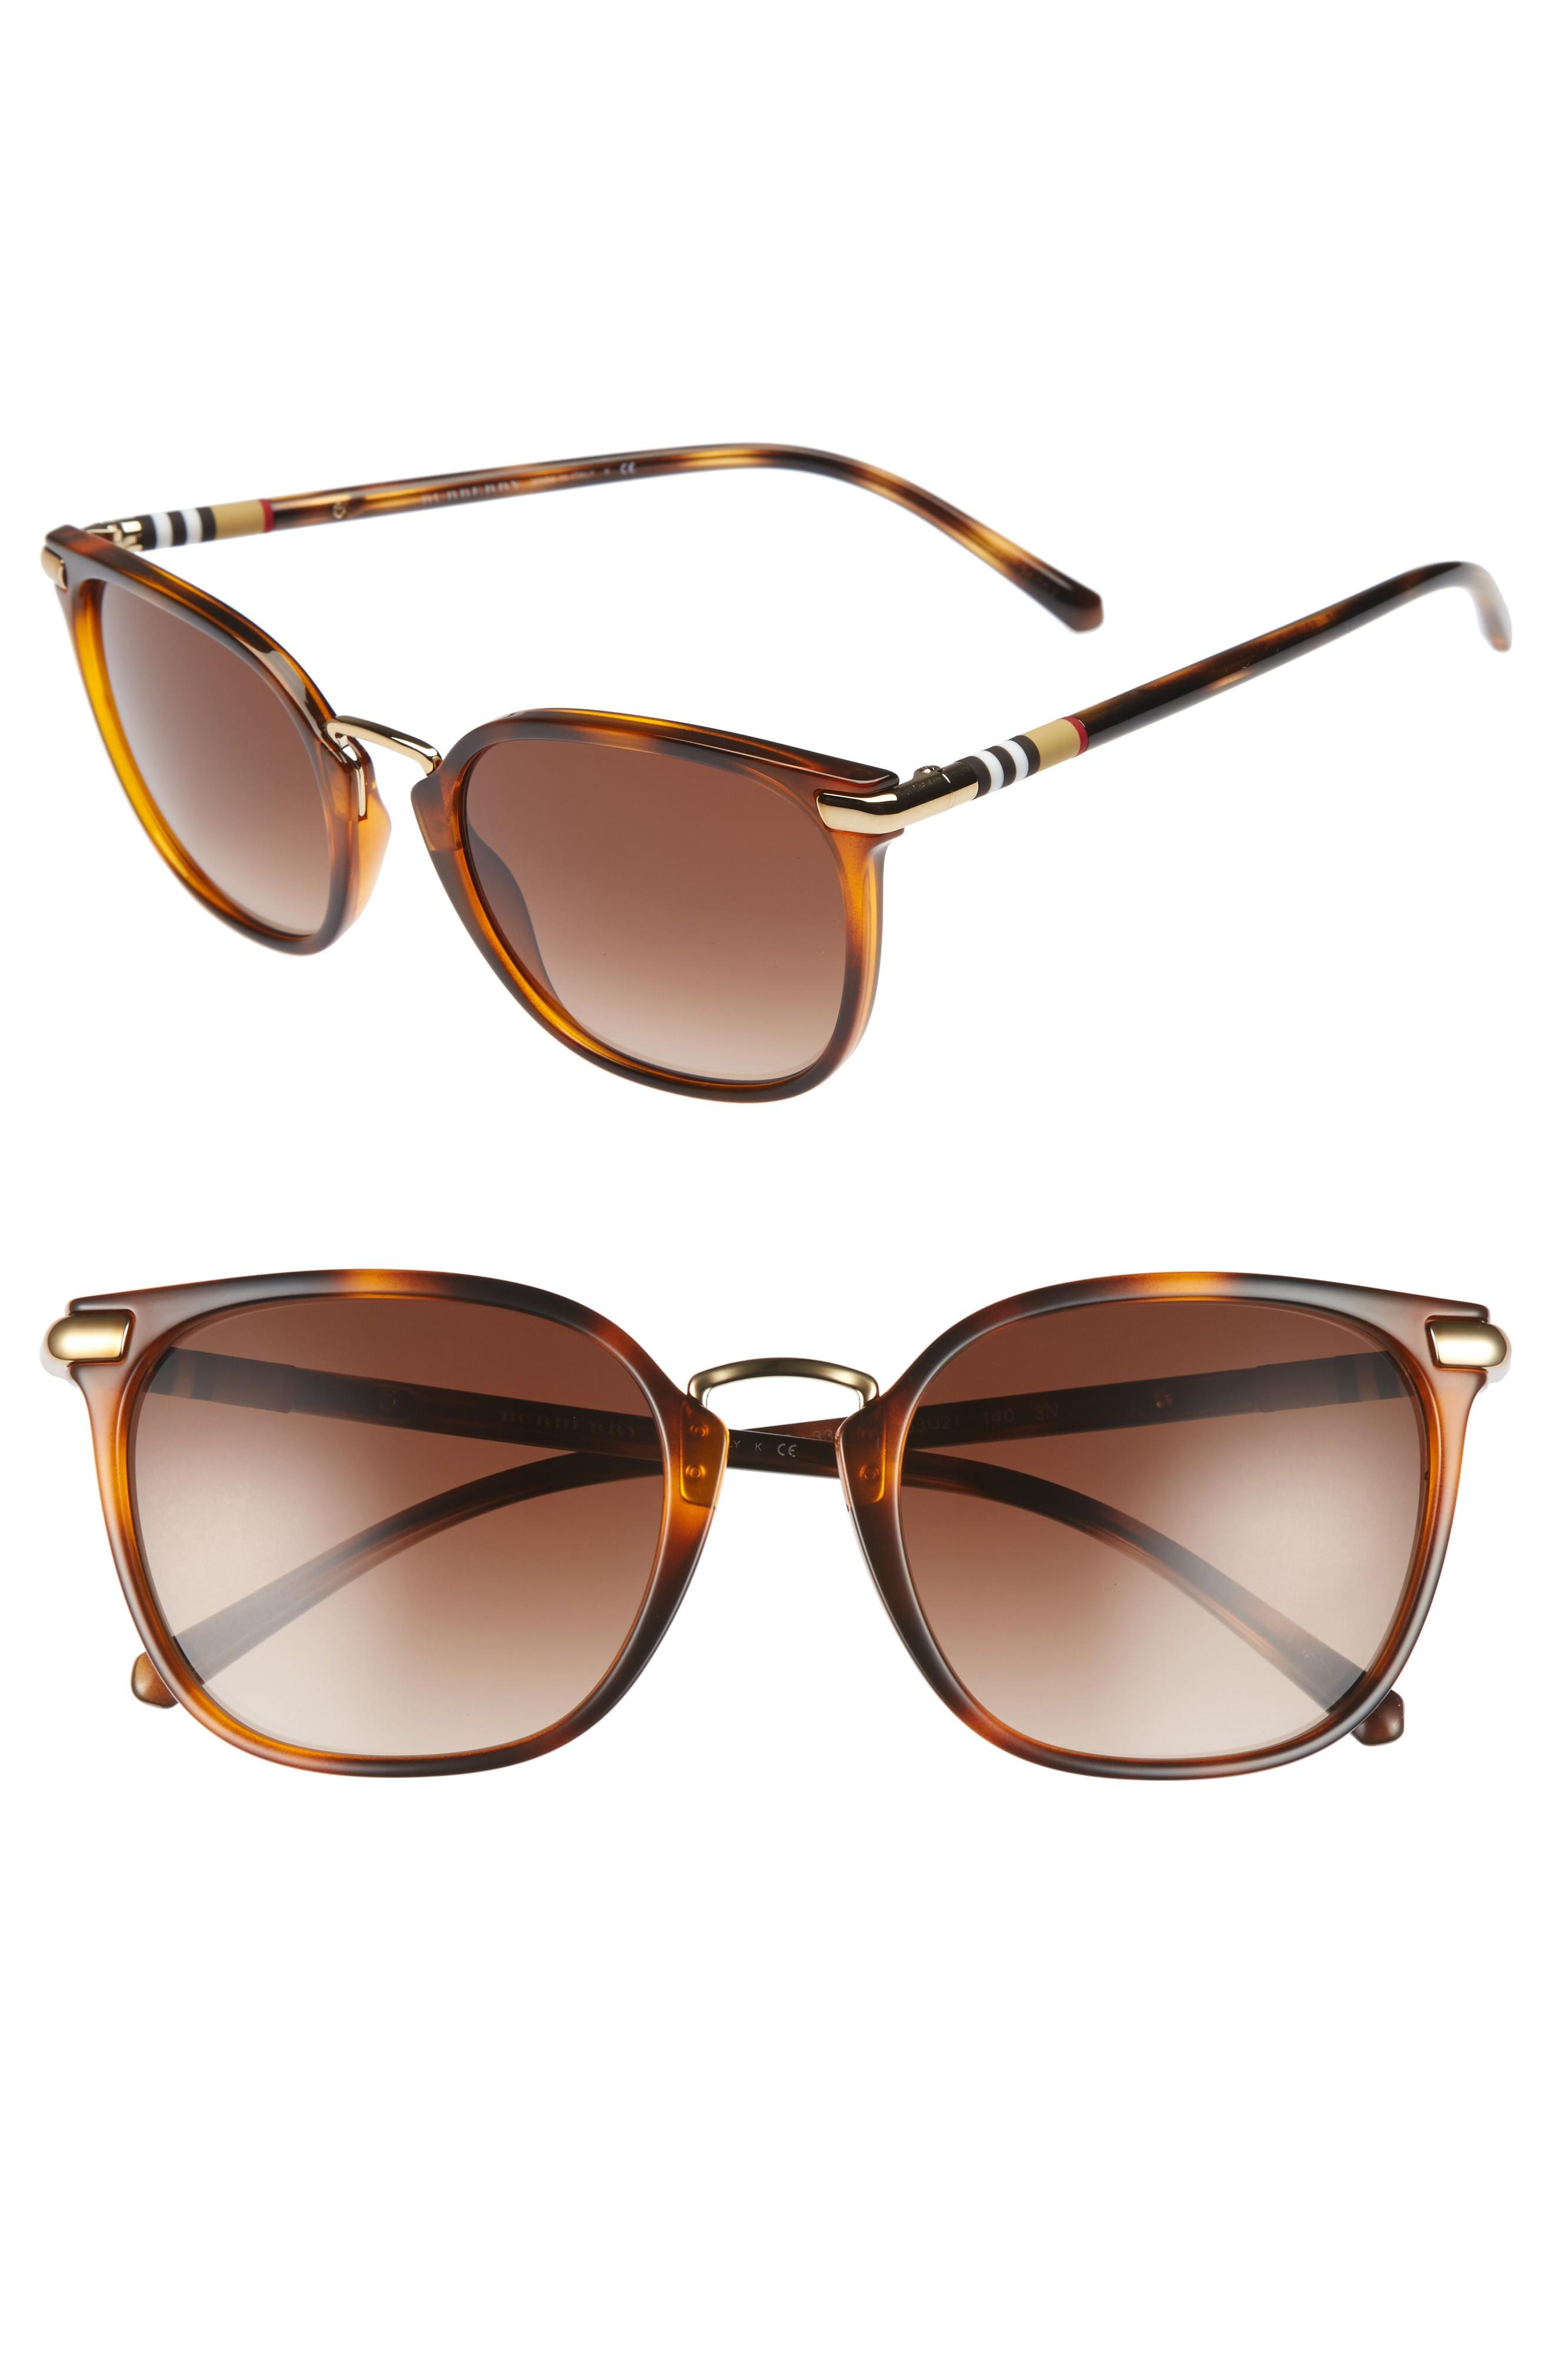 4012083cc3366 A polished metal bridge highlights the frames of polished Italian sunglasses  fashioned with gradient lenses and Burberry checks at the temples.